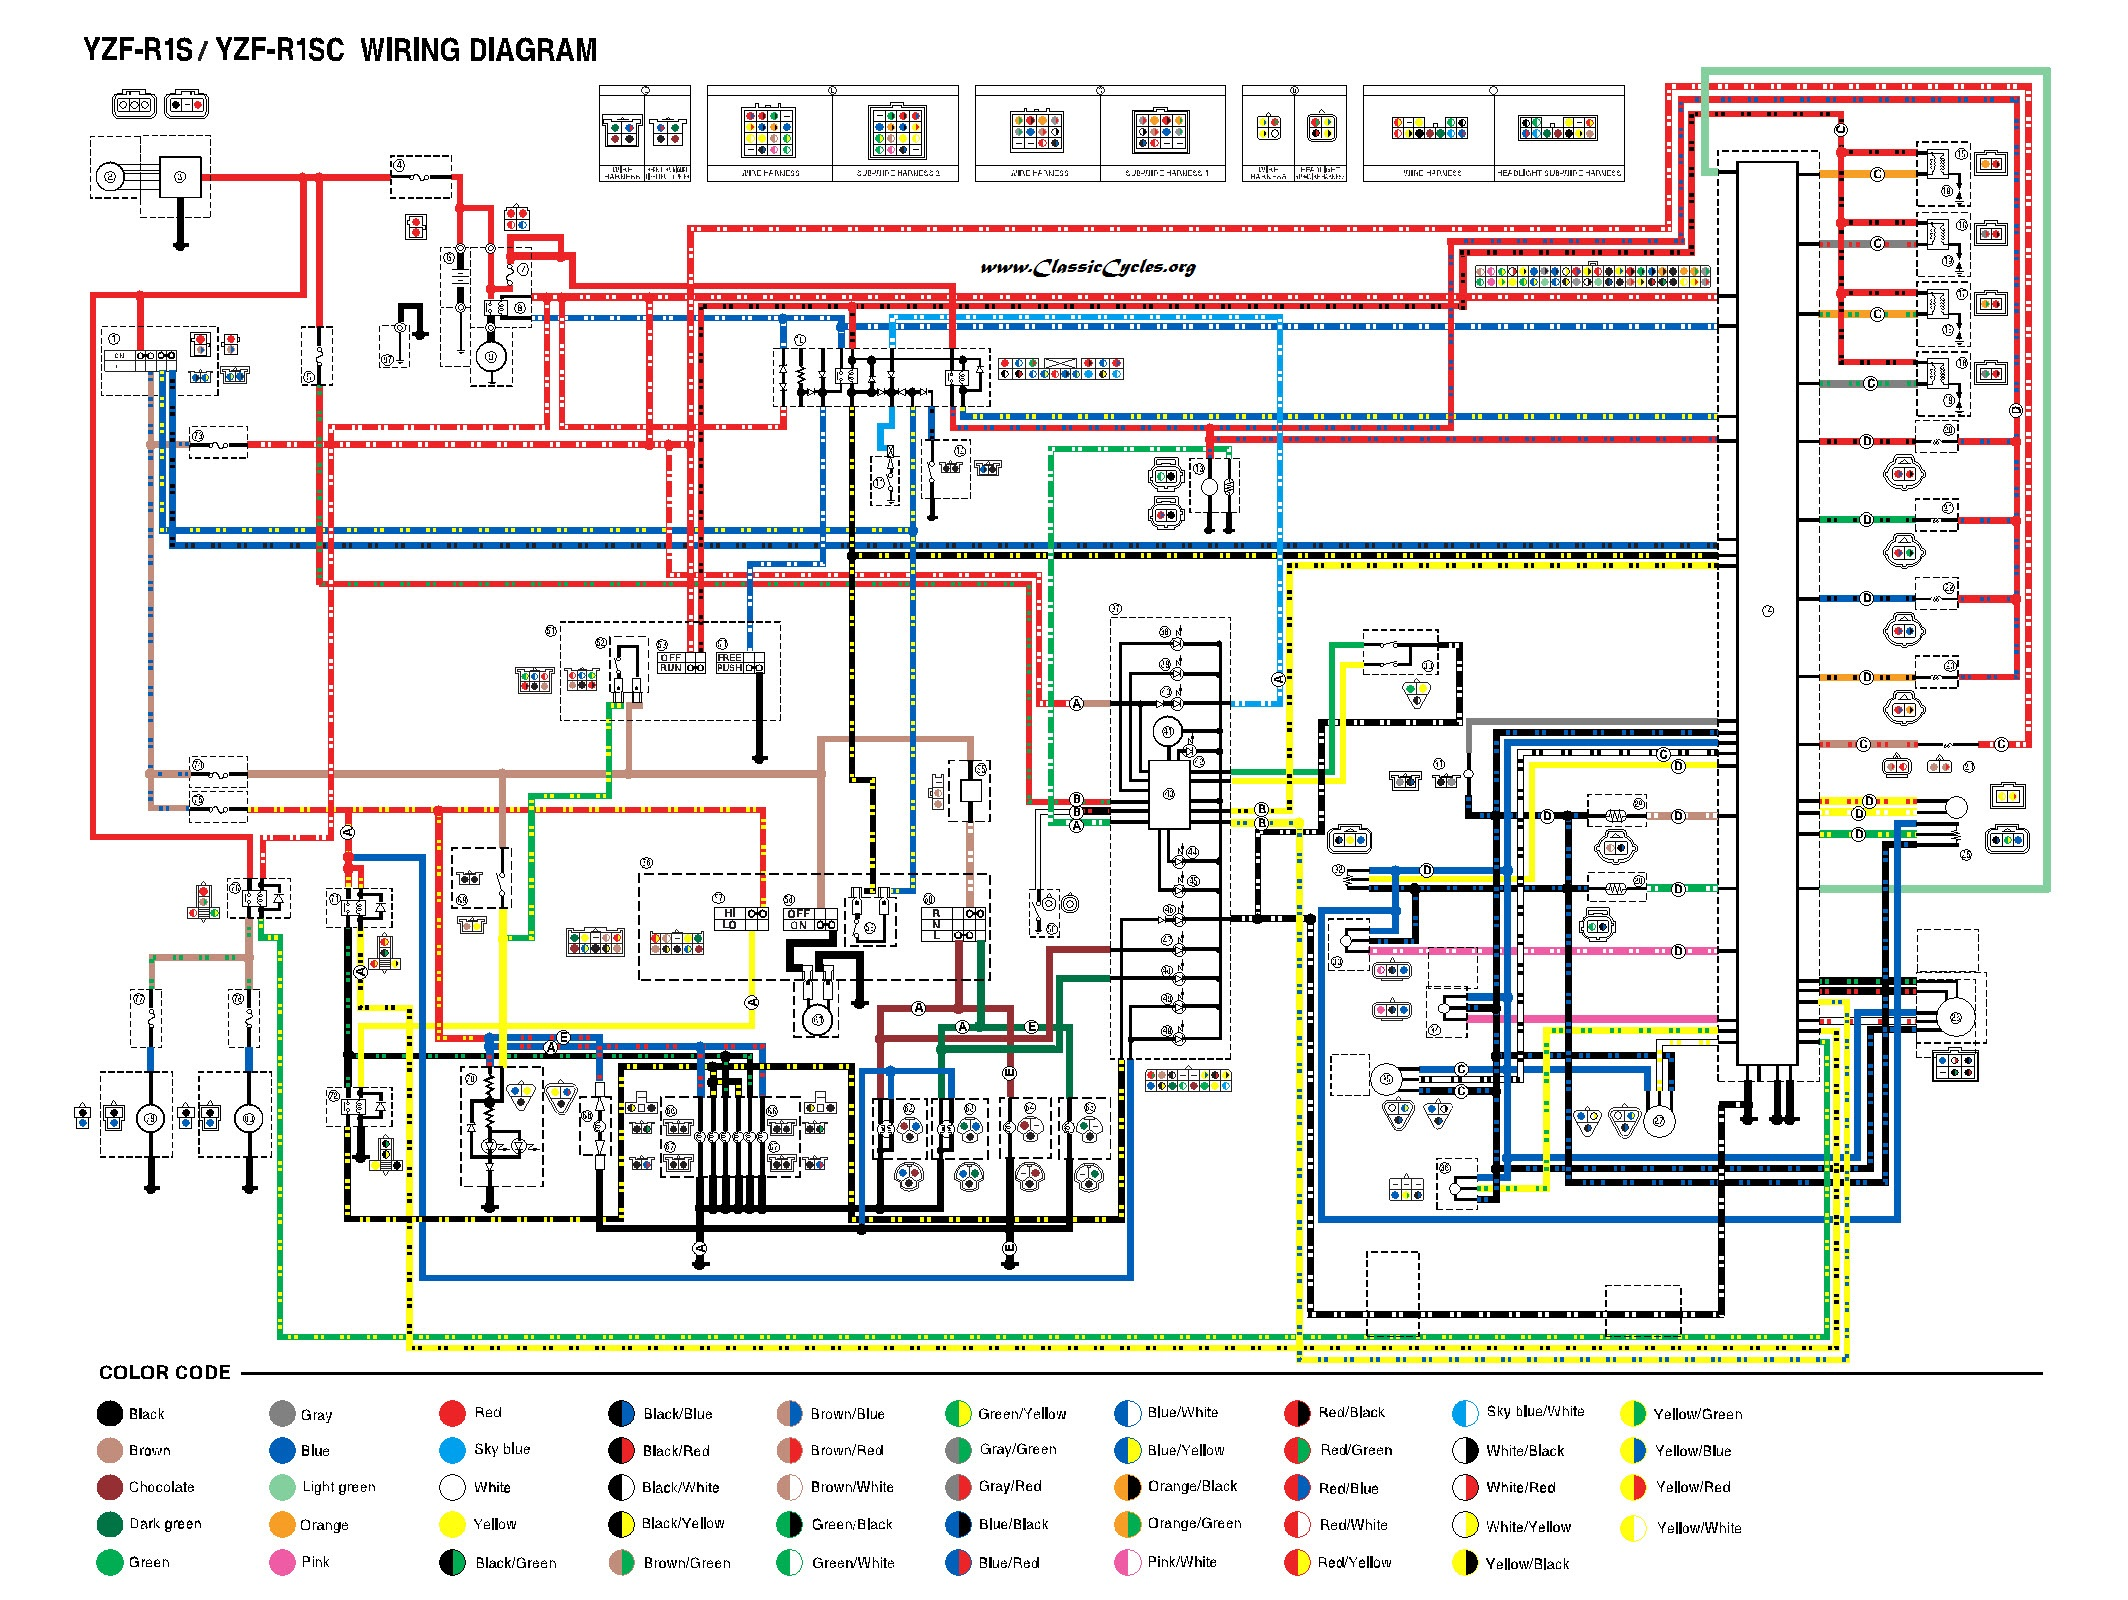 yamaha gx 80 1976 moto yamaha virago 535 wiring diagram yamaha wiring diagrams for diy 2017 Yamaha VXR at honlapkeszites.co